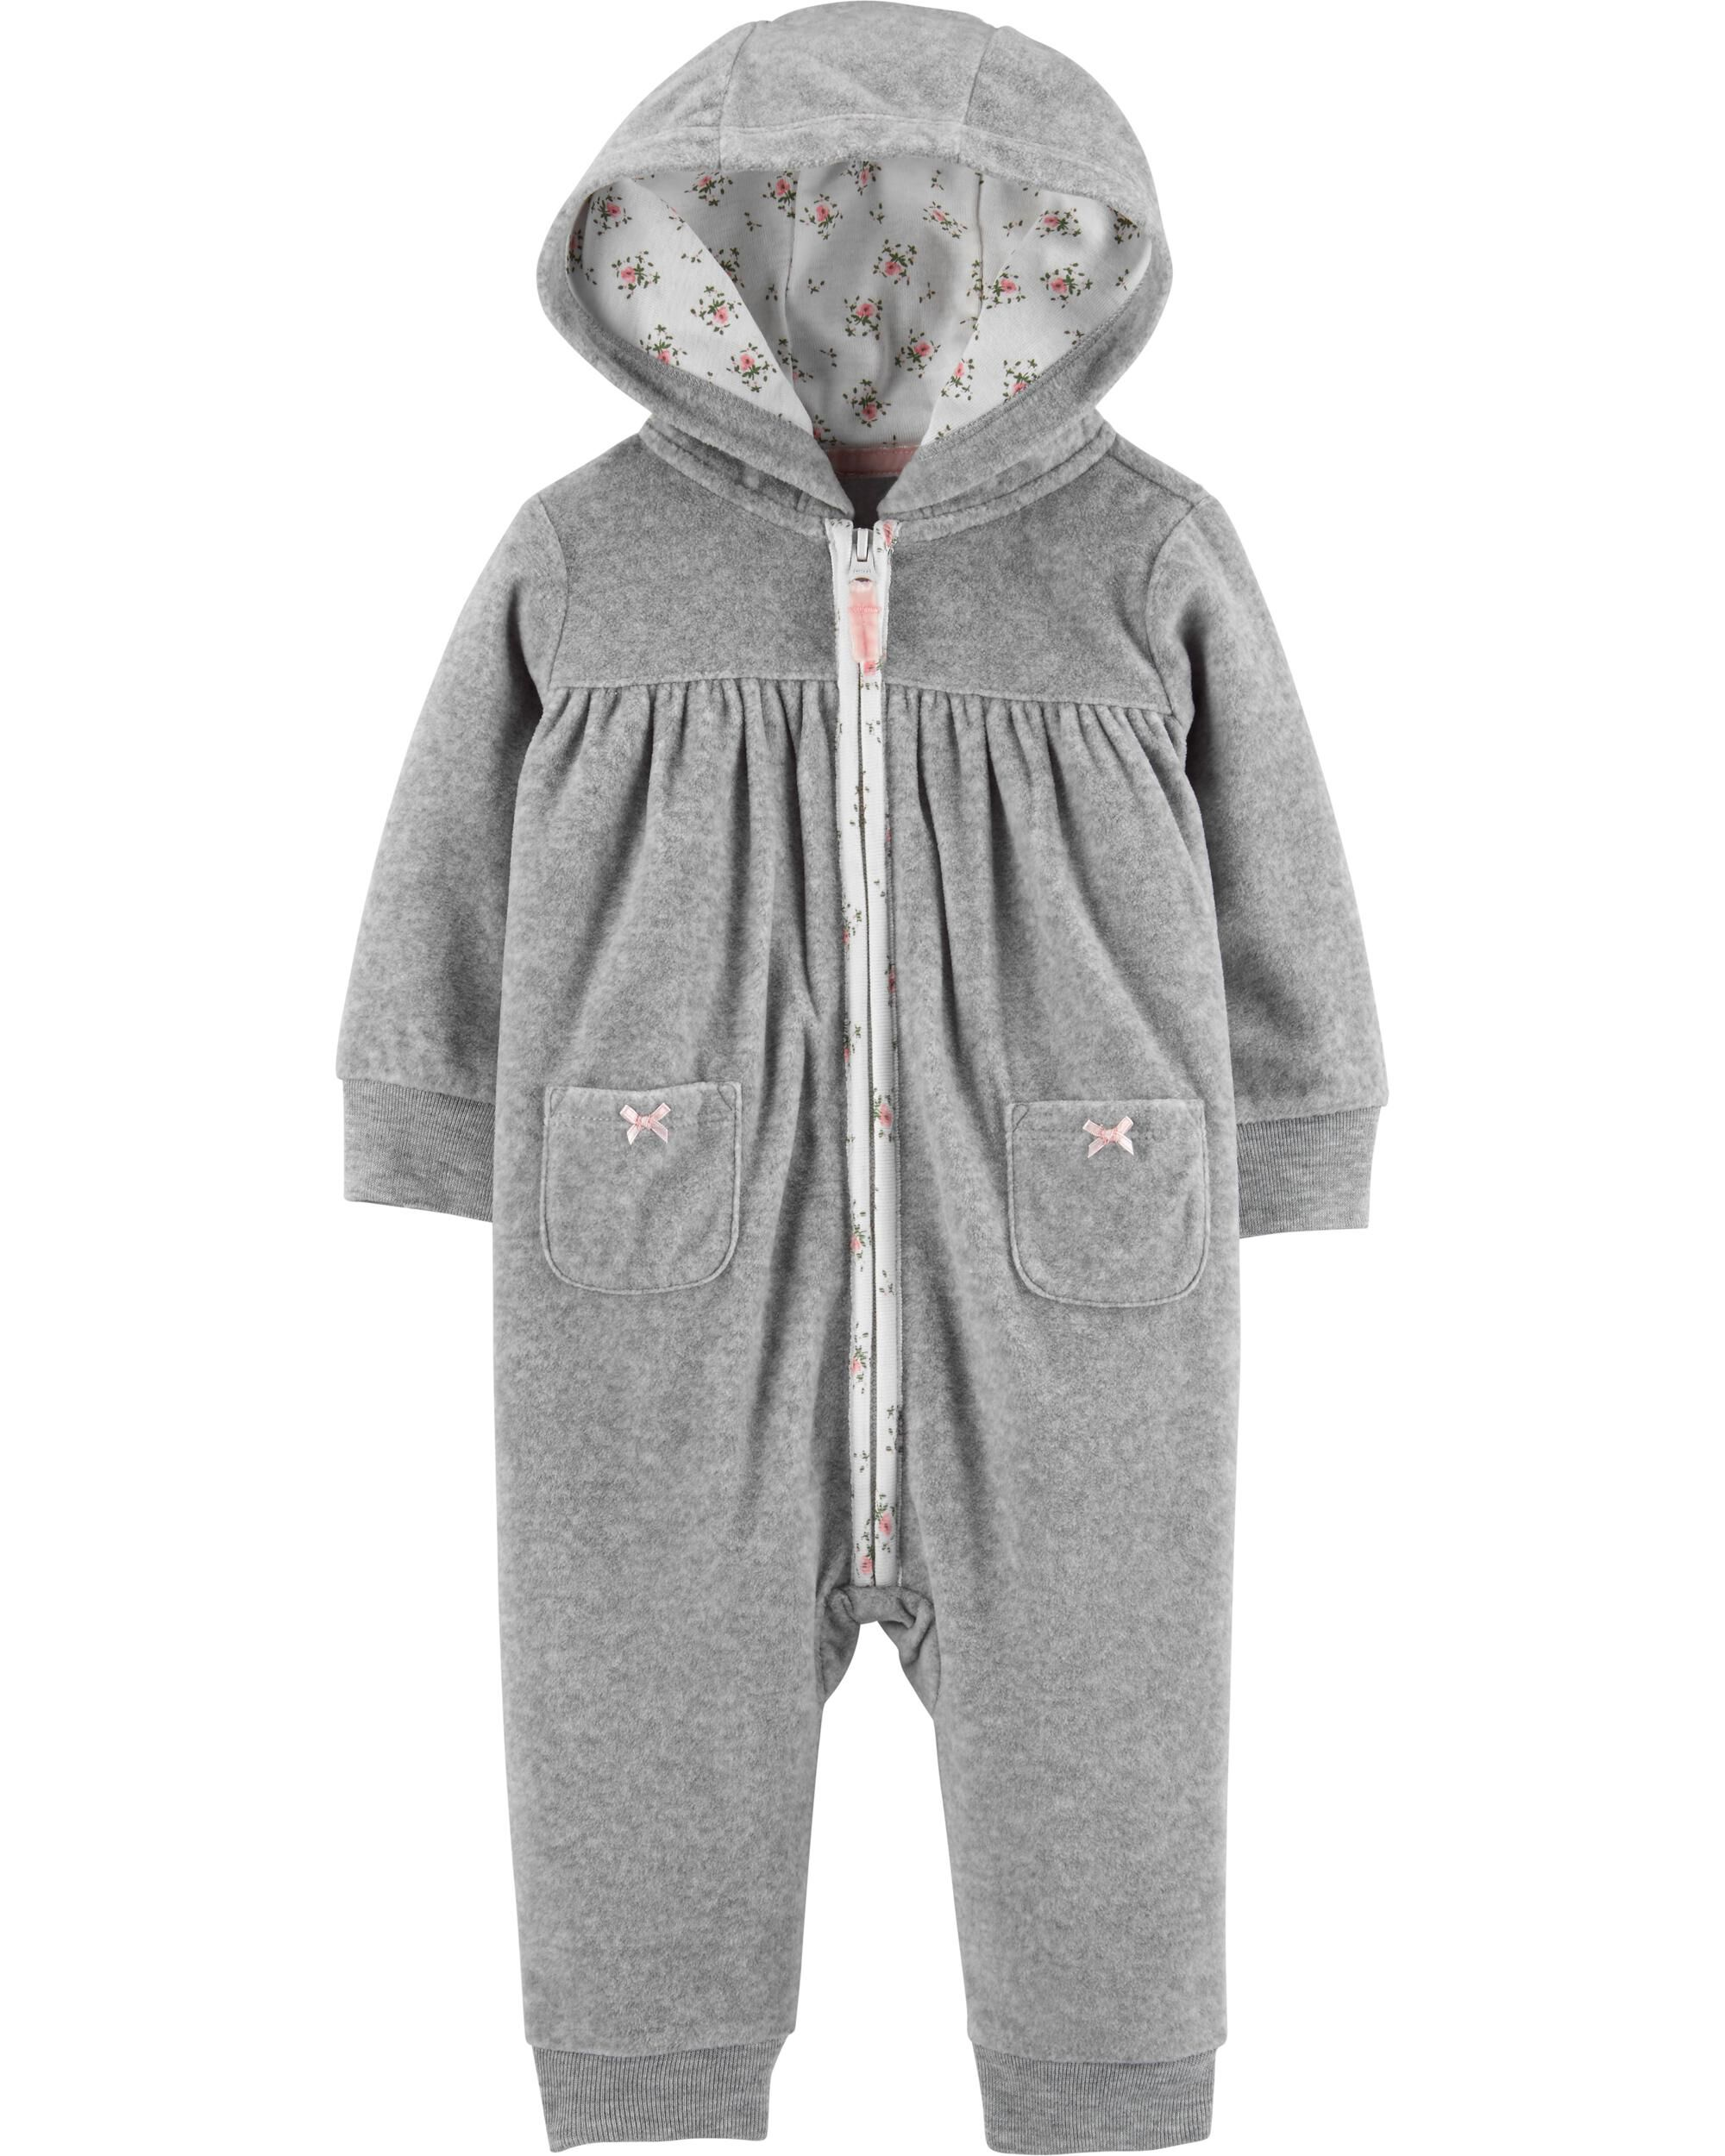 *CLEARANCE* Hooded Zip-Up Fleece Jumpsuit